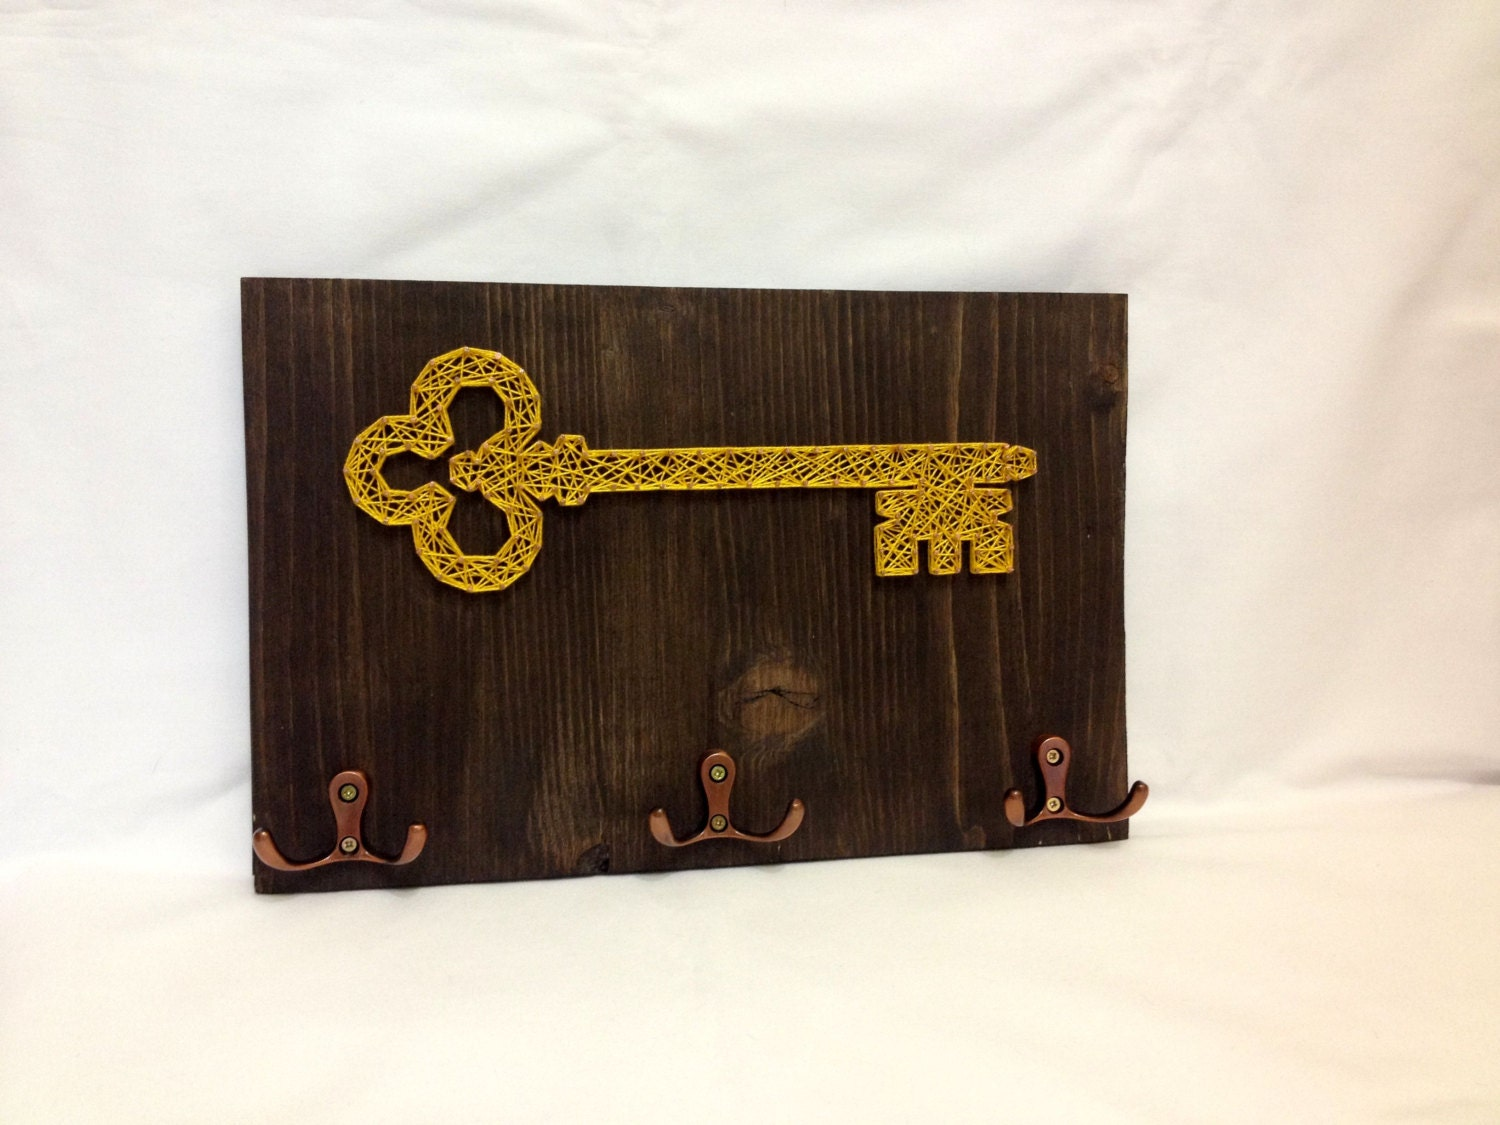 String Art Key Holder Wall For Home Decor 3 Wall Hanger Hook